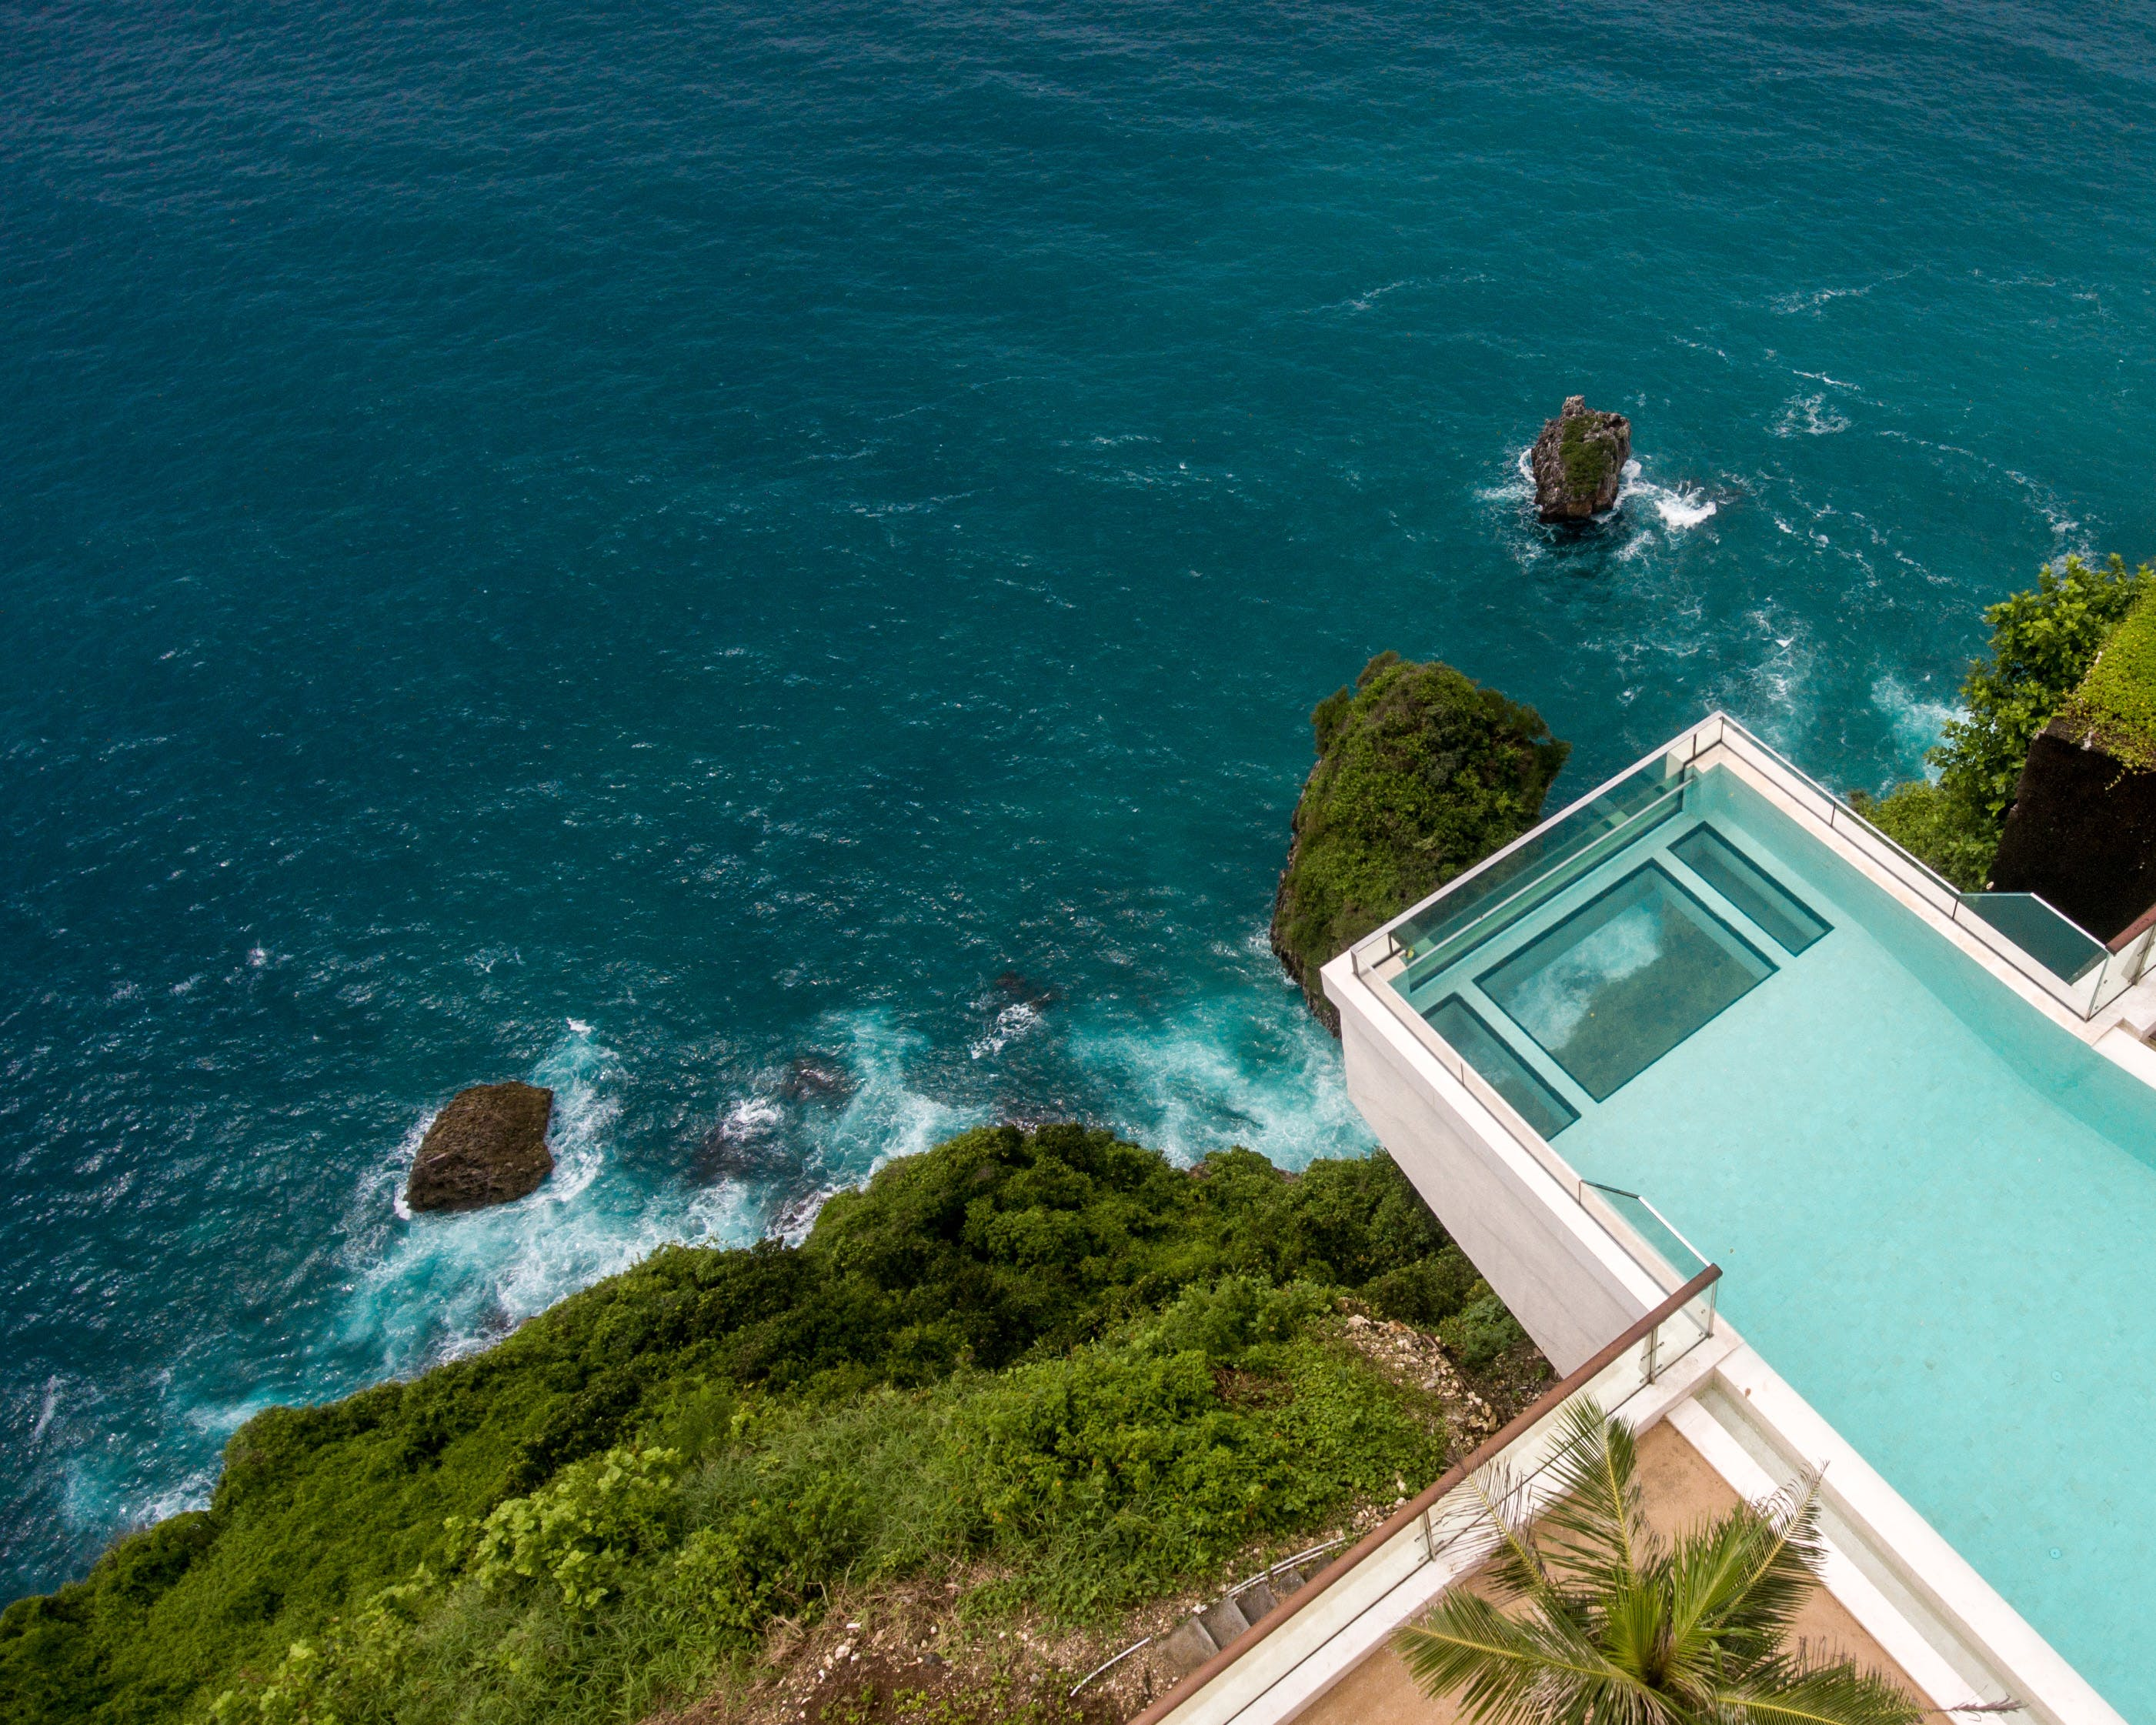 Oneeighty at The edge Luxury Villa Resort, Uluwatu Bali